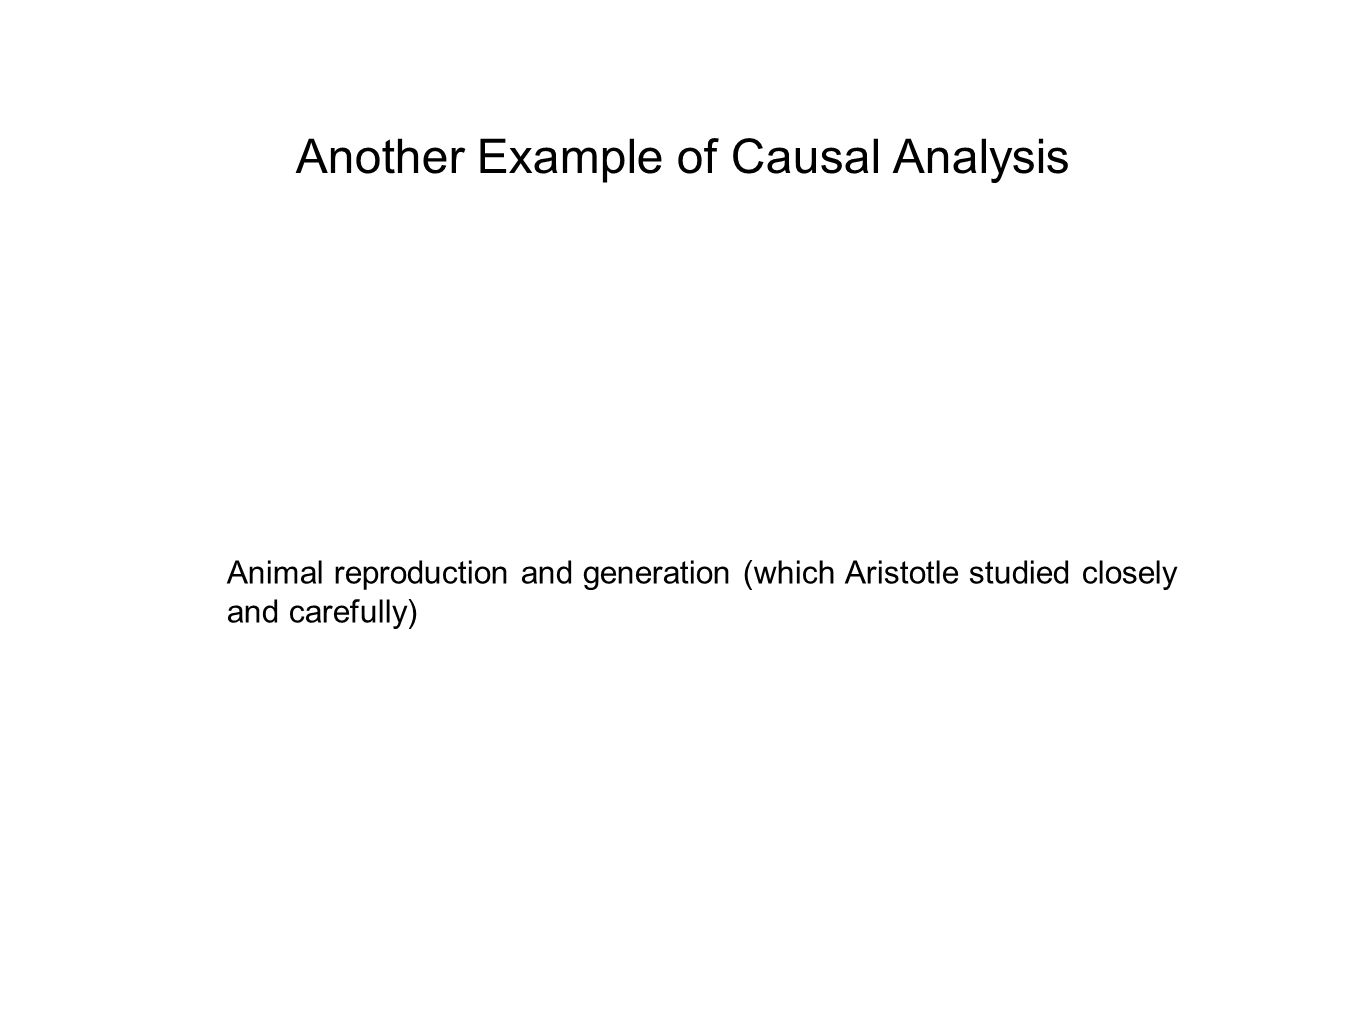 Another Example of Causal Analysis Animal reproduction and generation (which Aristotle studied closely and carefully)